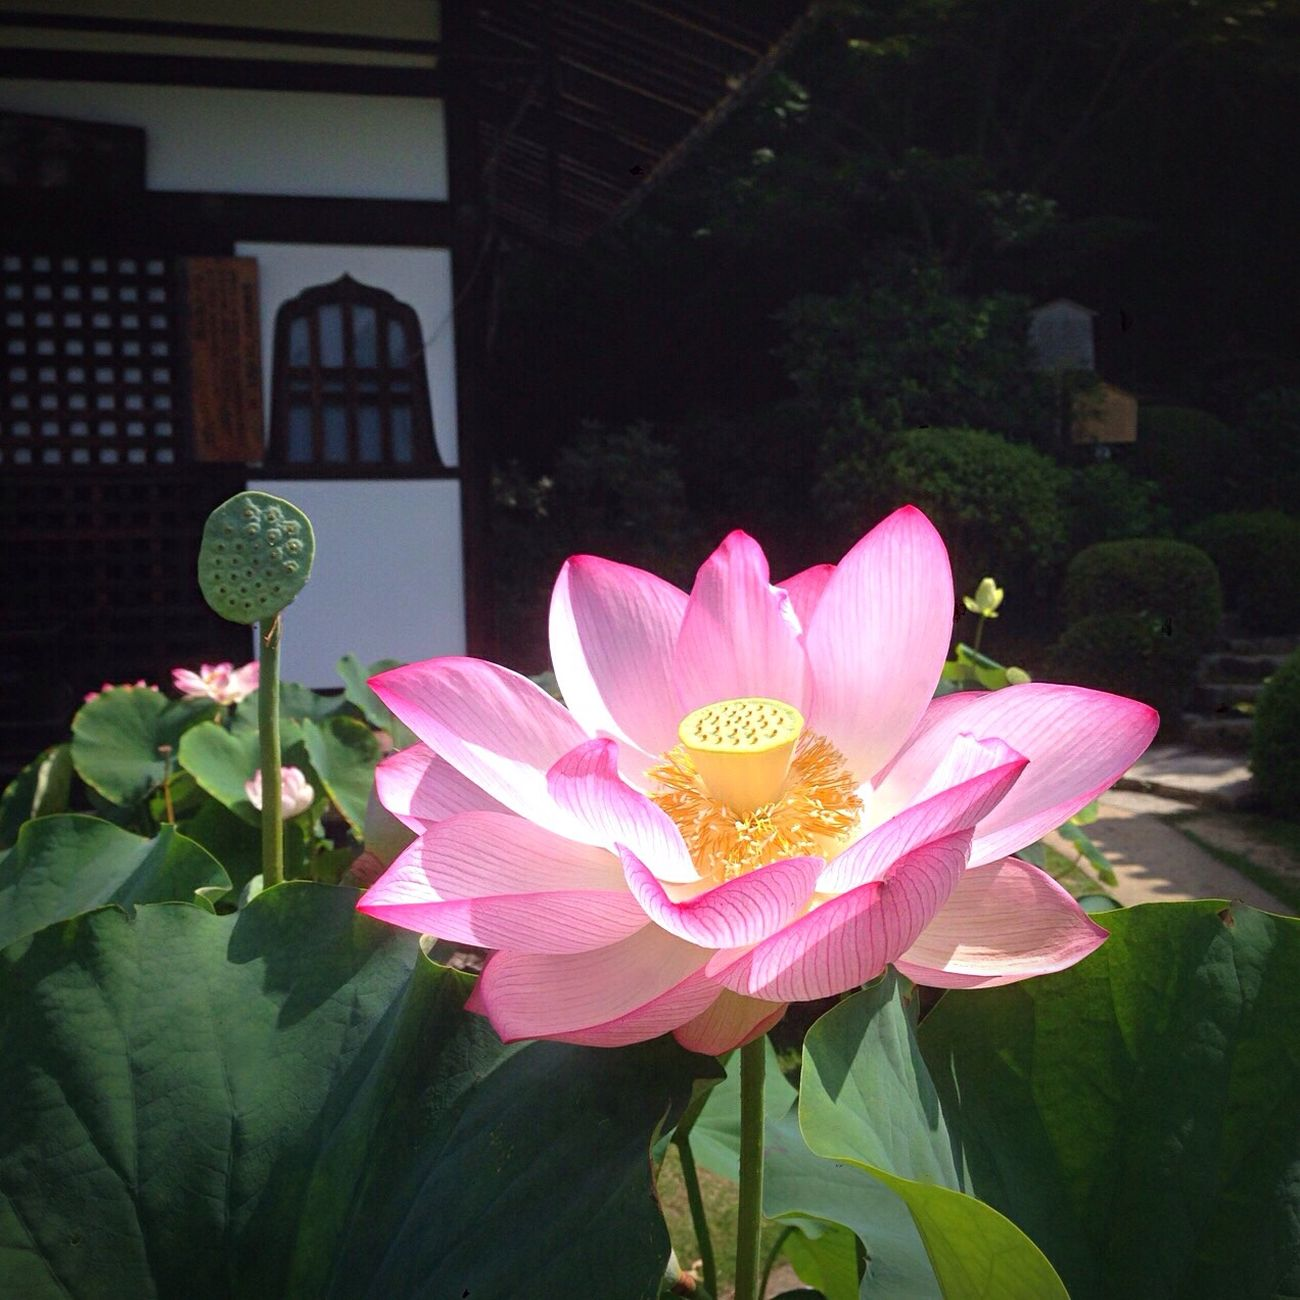 Kyoto Japan Uji Mimurotoji Lotus Flower Flower Temple Summer 京都 日本 宇治 三室戸寺 蓮 花 夏 寺